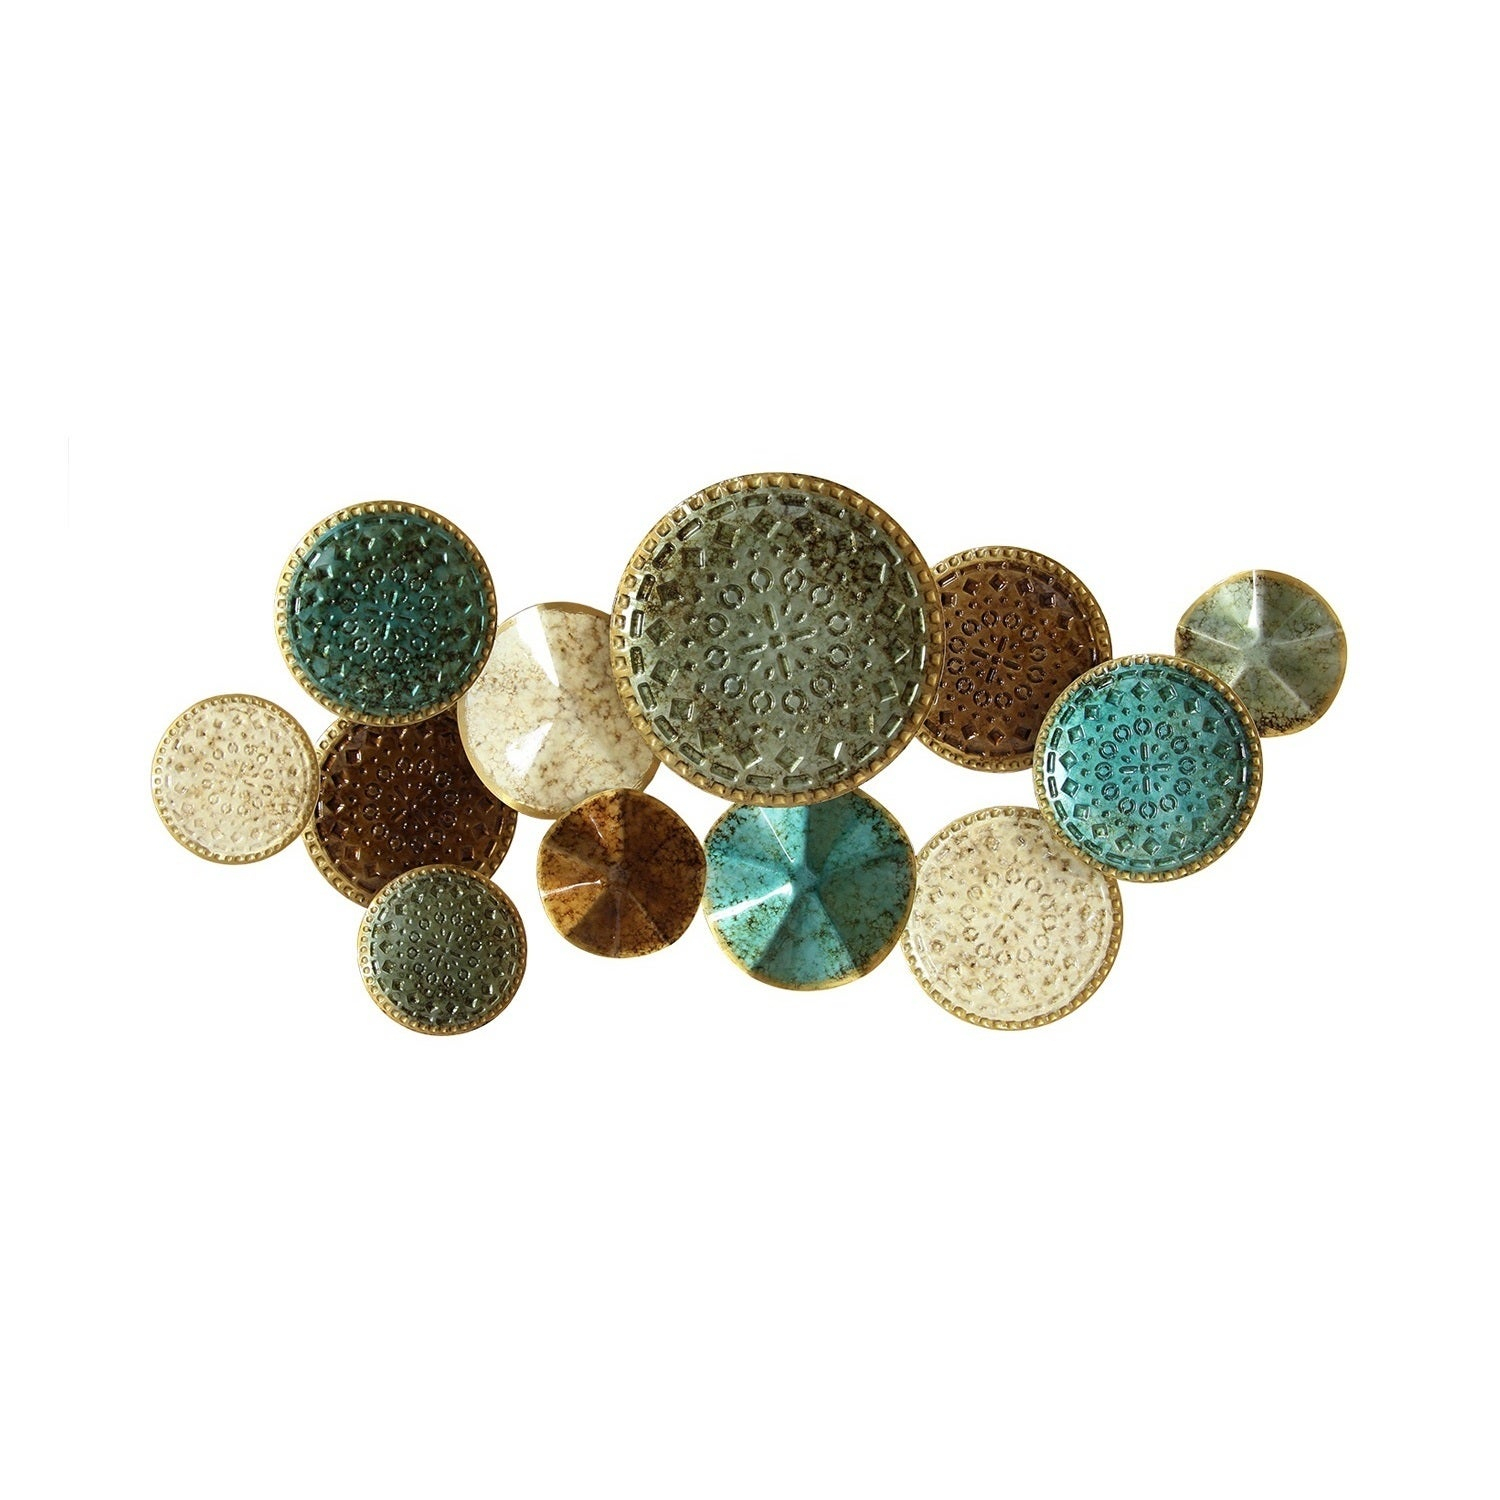 The Curated Nomad Mel Home Multicolor Metal Plates Wall Decor throughout Scattered Metal Italian Plates Wall Decor (Image 21 of 30)